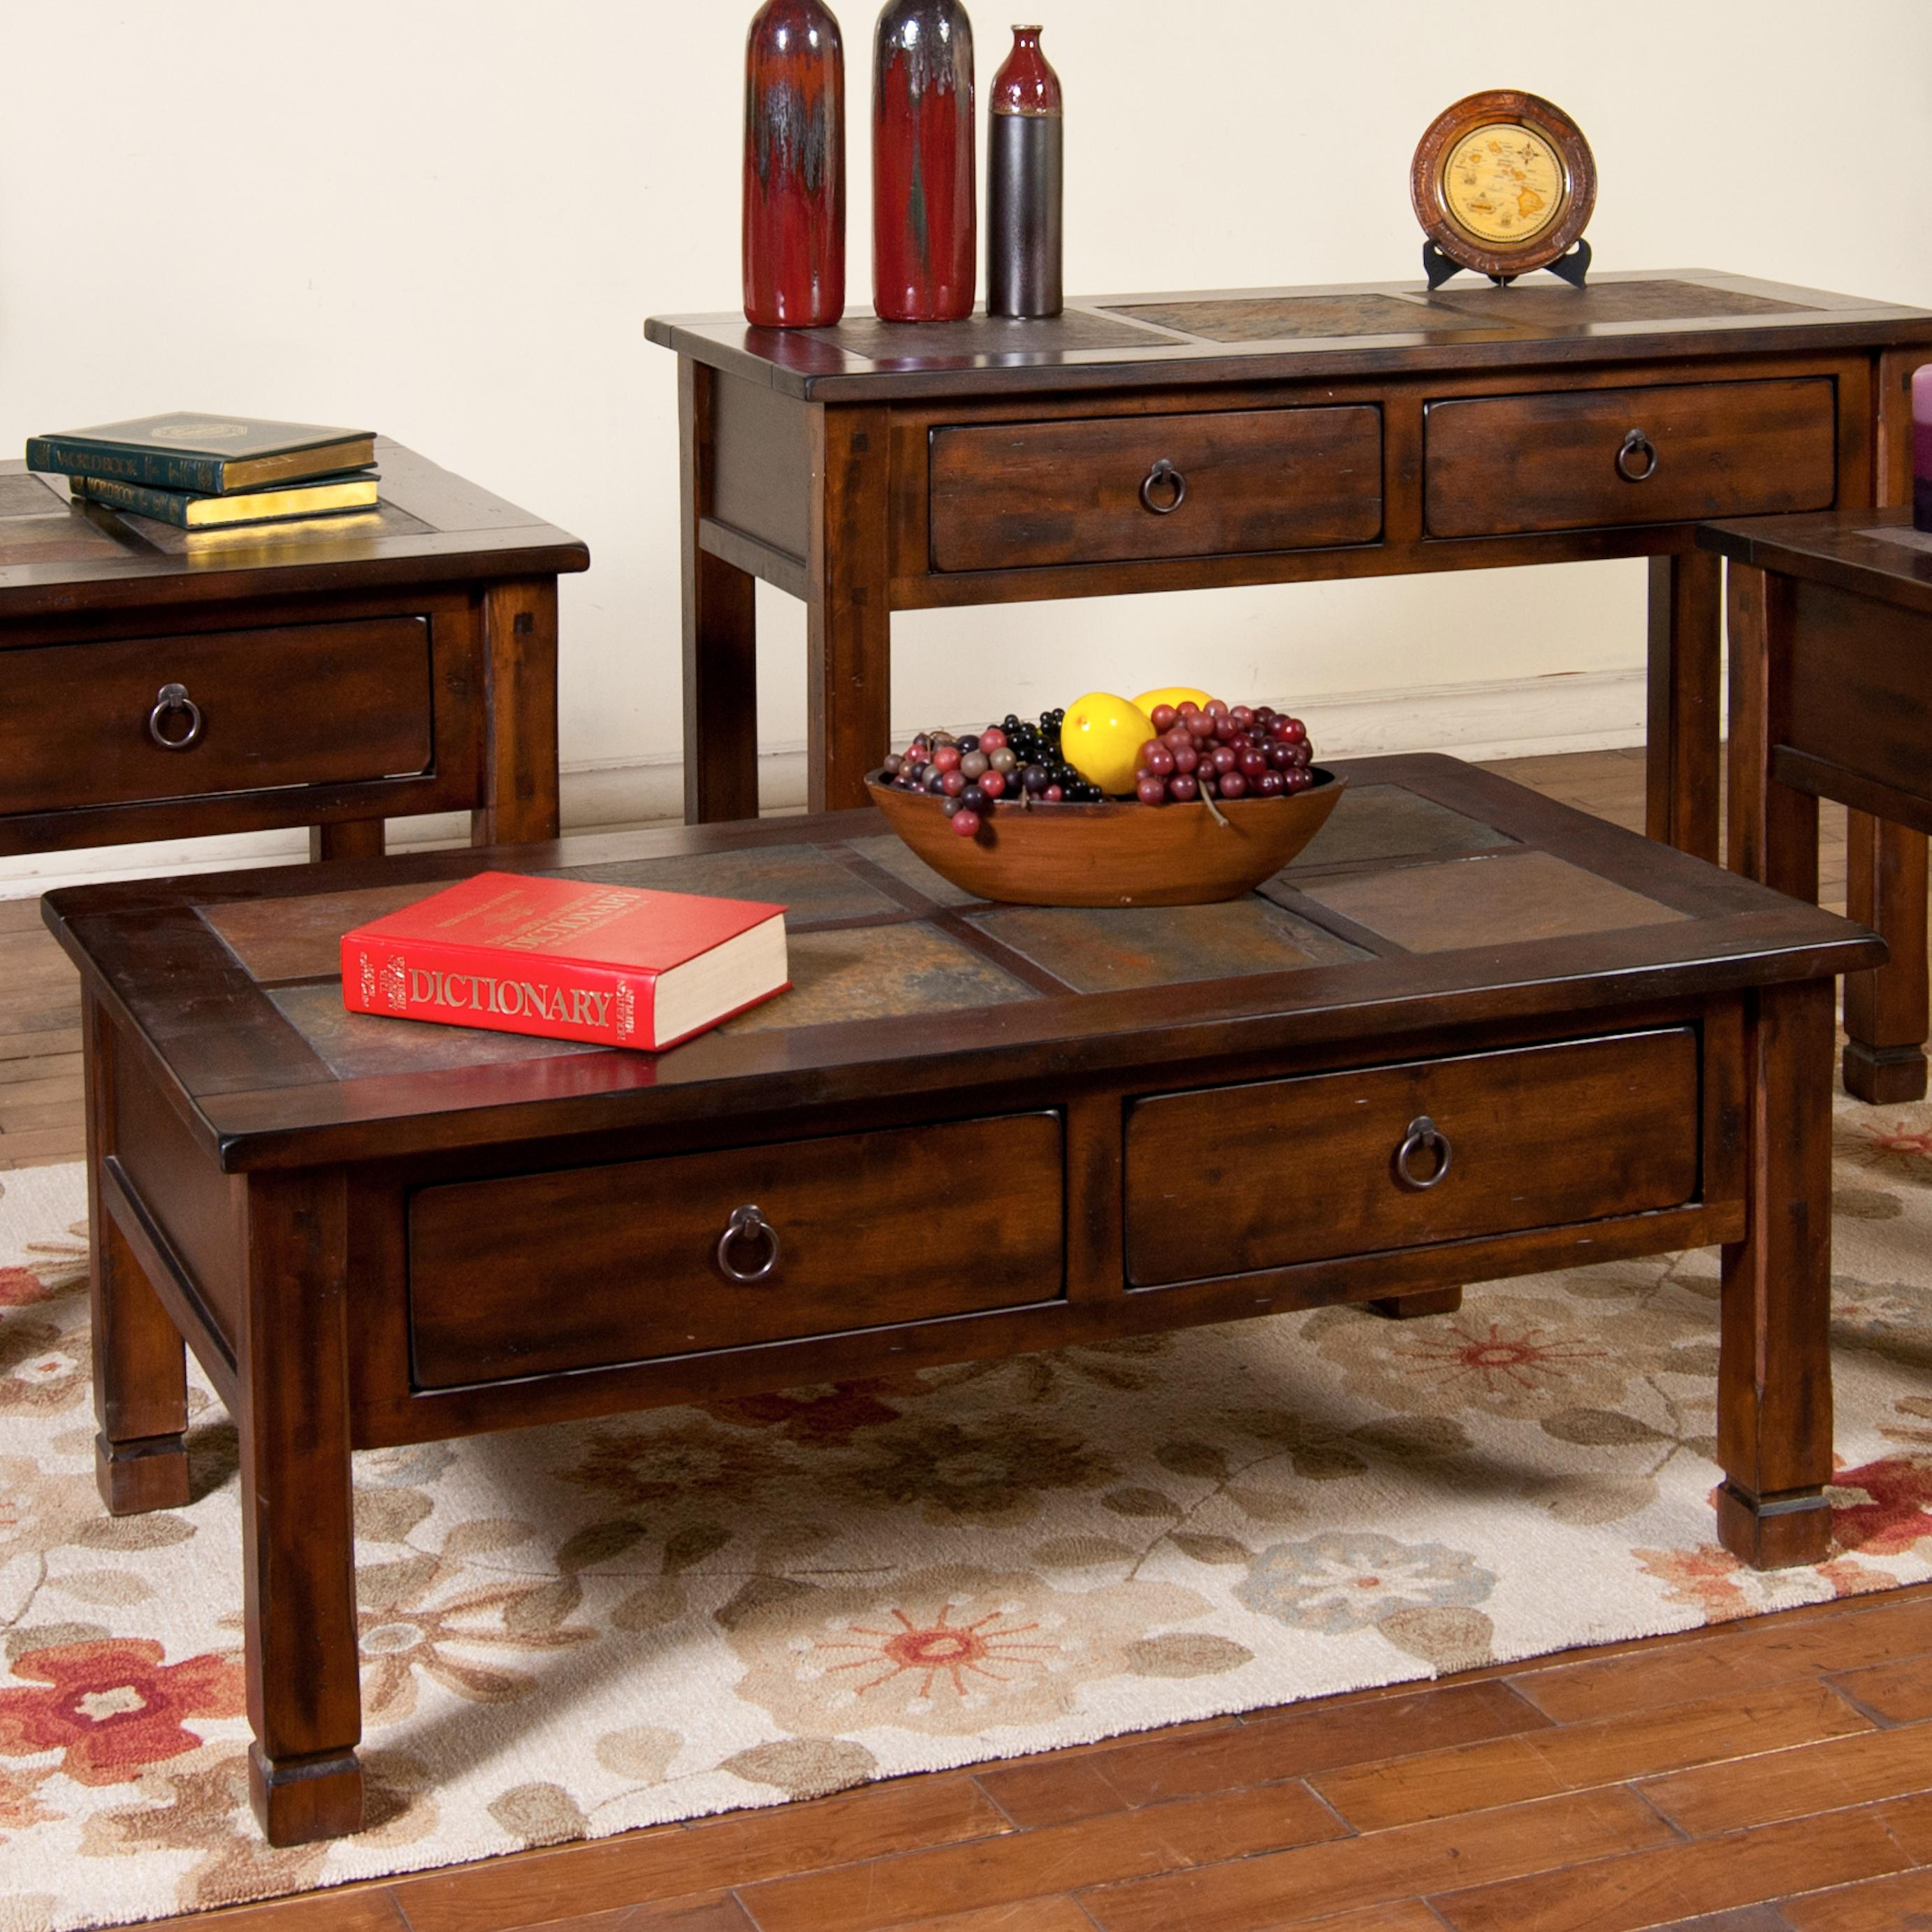 Coffee table with slate tiles and 2 drawers for Furniture collection